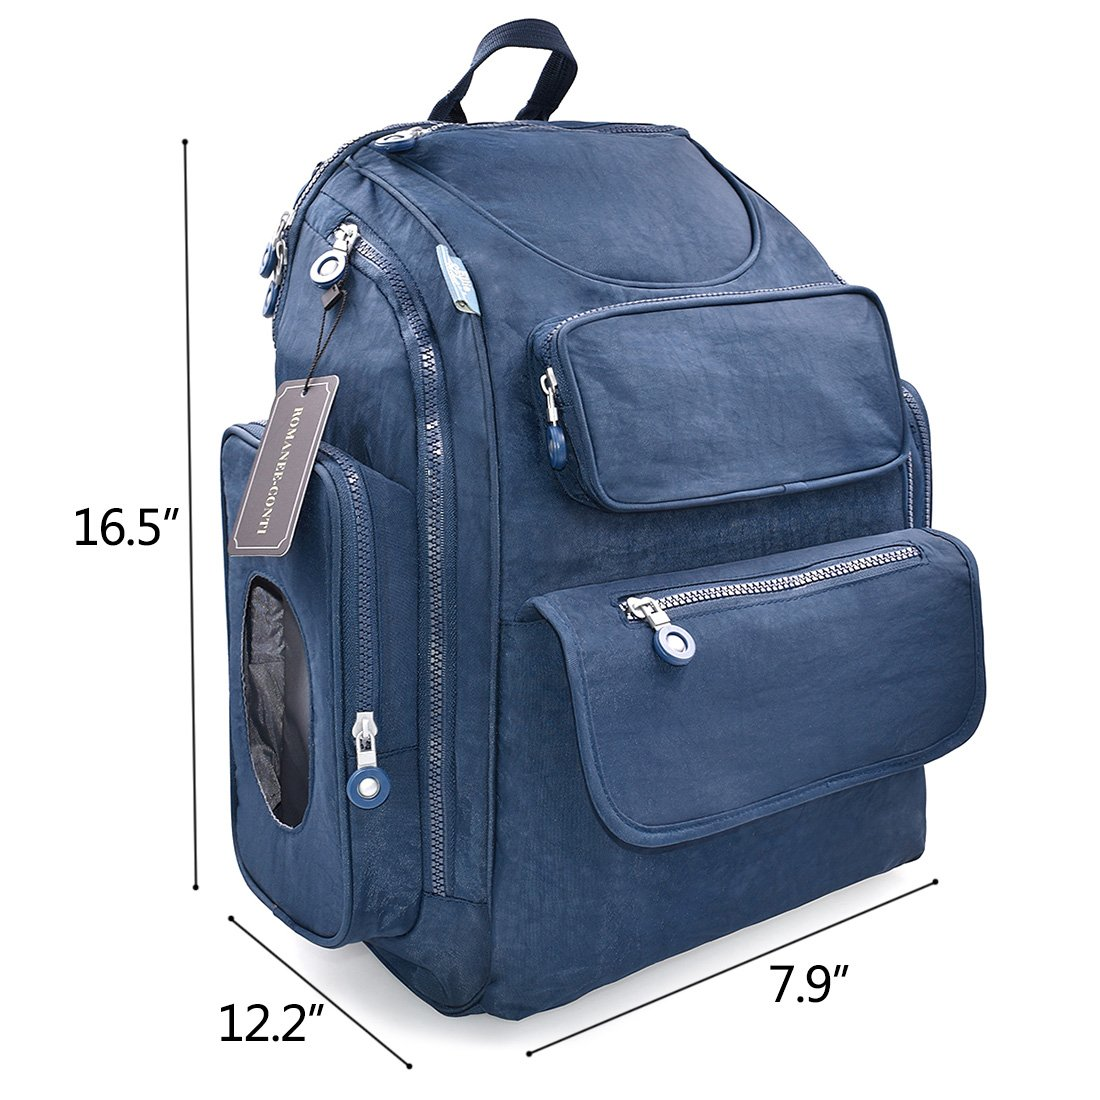 07877eaf6cf6b Amazon.com : Diaper Bag Backpack Baby Changing Pad Lightweight Large Nappy  Travel Backpack Premium Oxford with Stroller Straps for Both Mom & Dad Blue  : ...